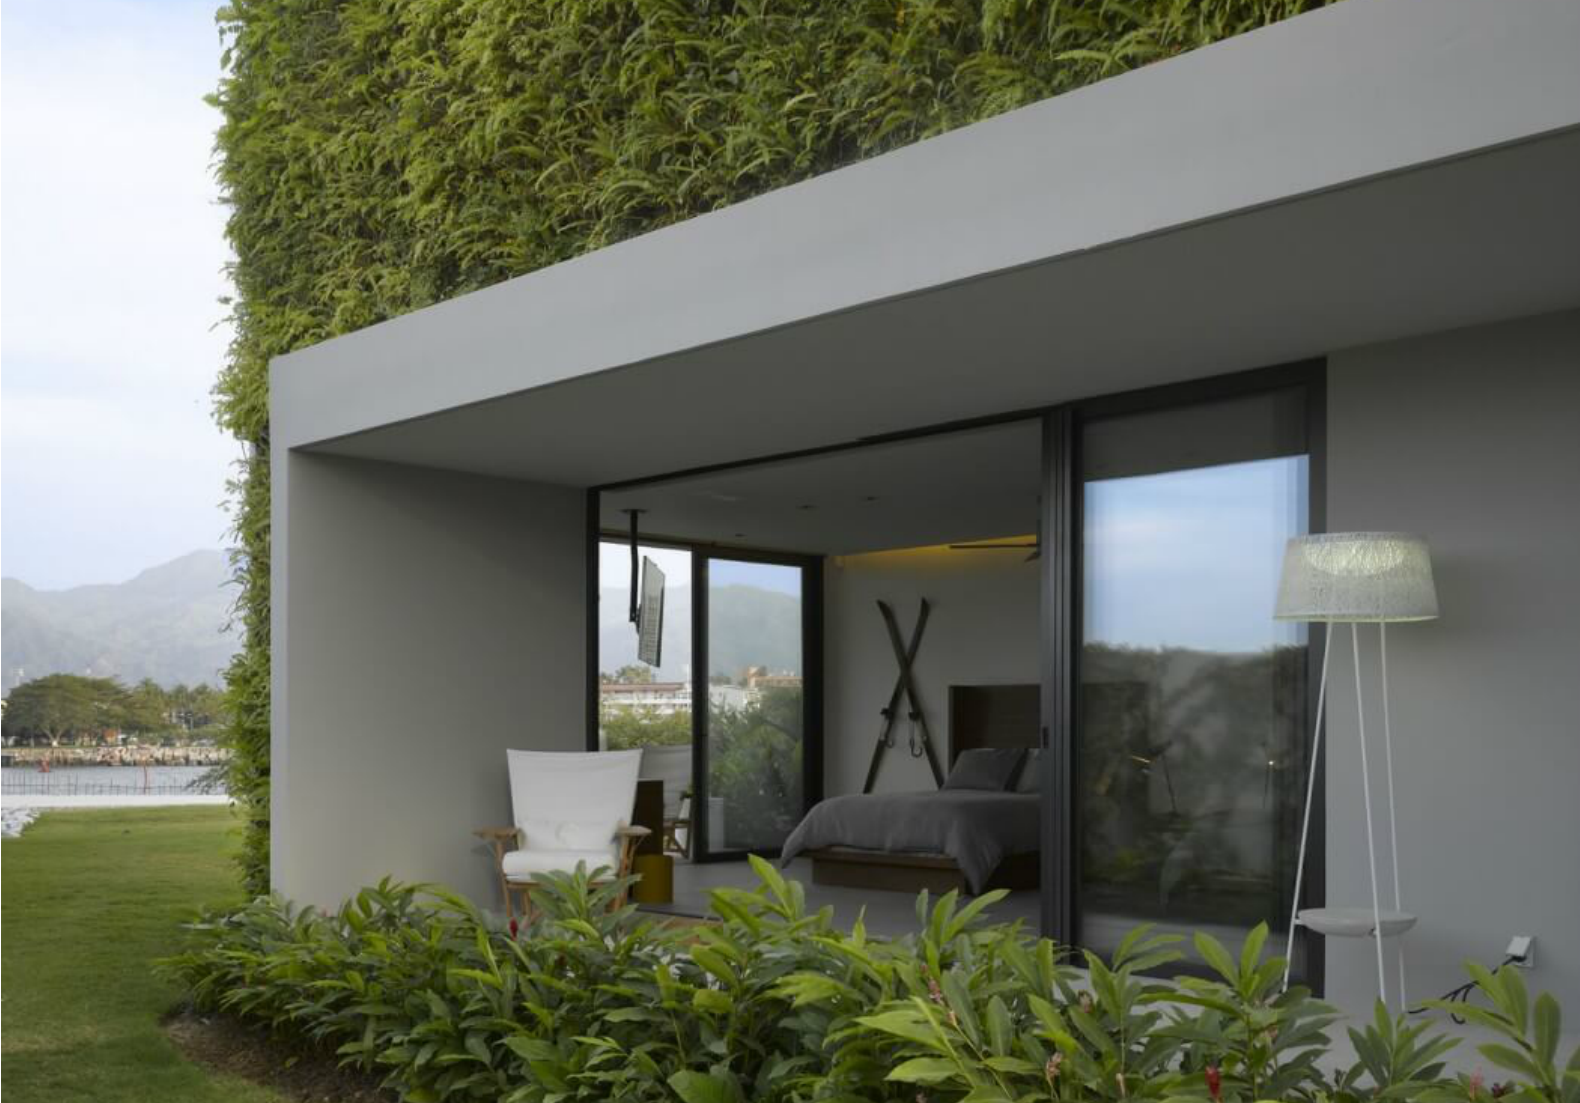 insulating veil of plants envelops stunning vallarta house in mexico